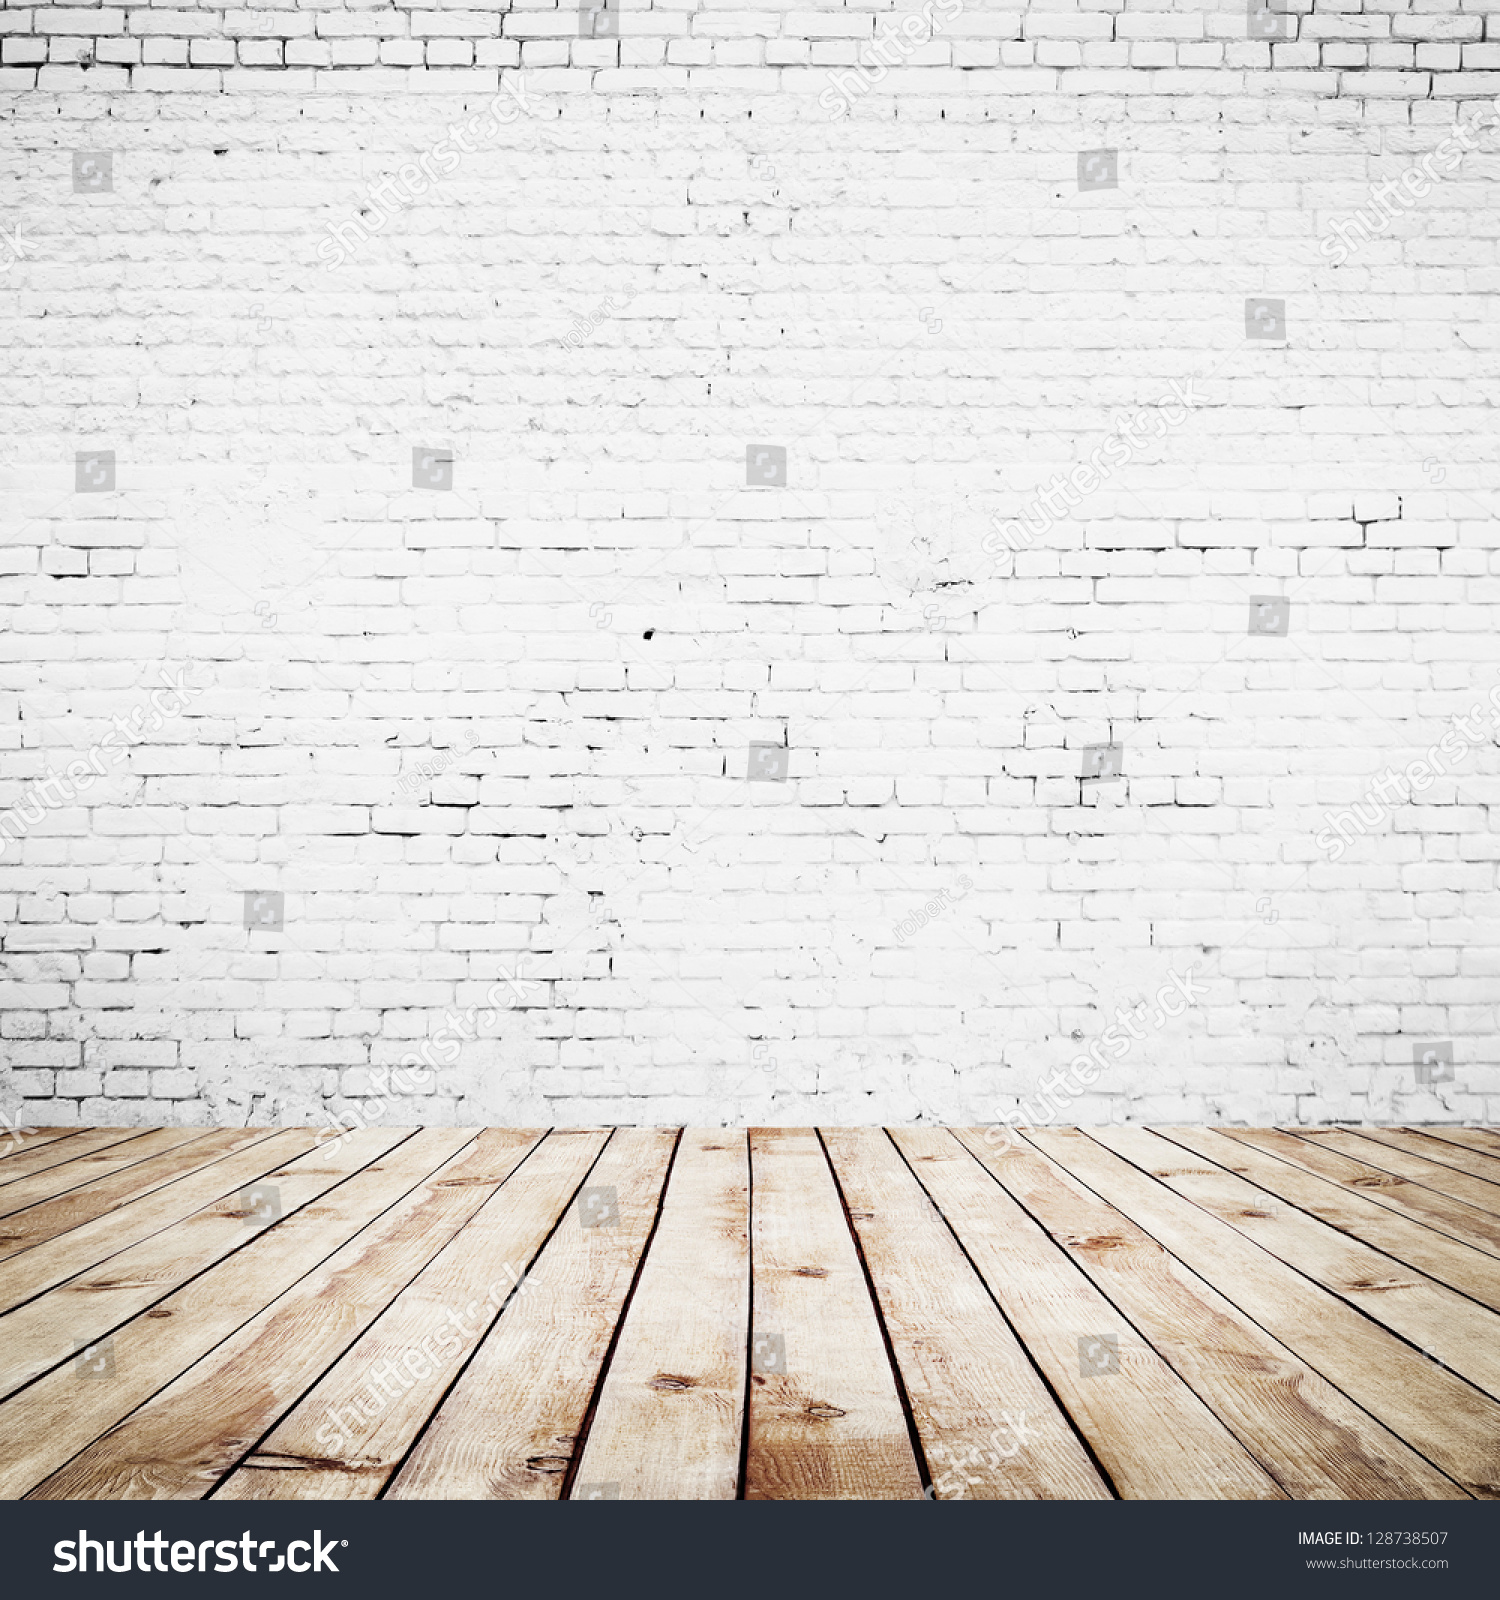 room interior vintage with white brick wall and wood floor background - Room Interior Vintage White Brick Wall Stock Photo 128738507